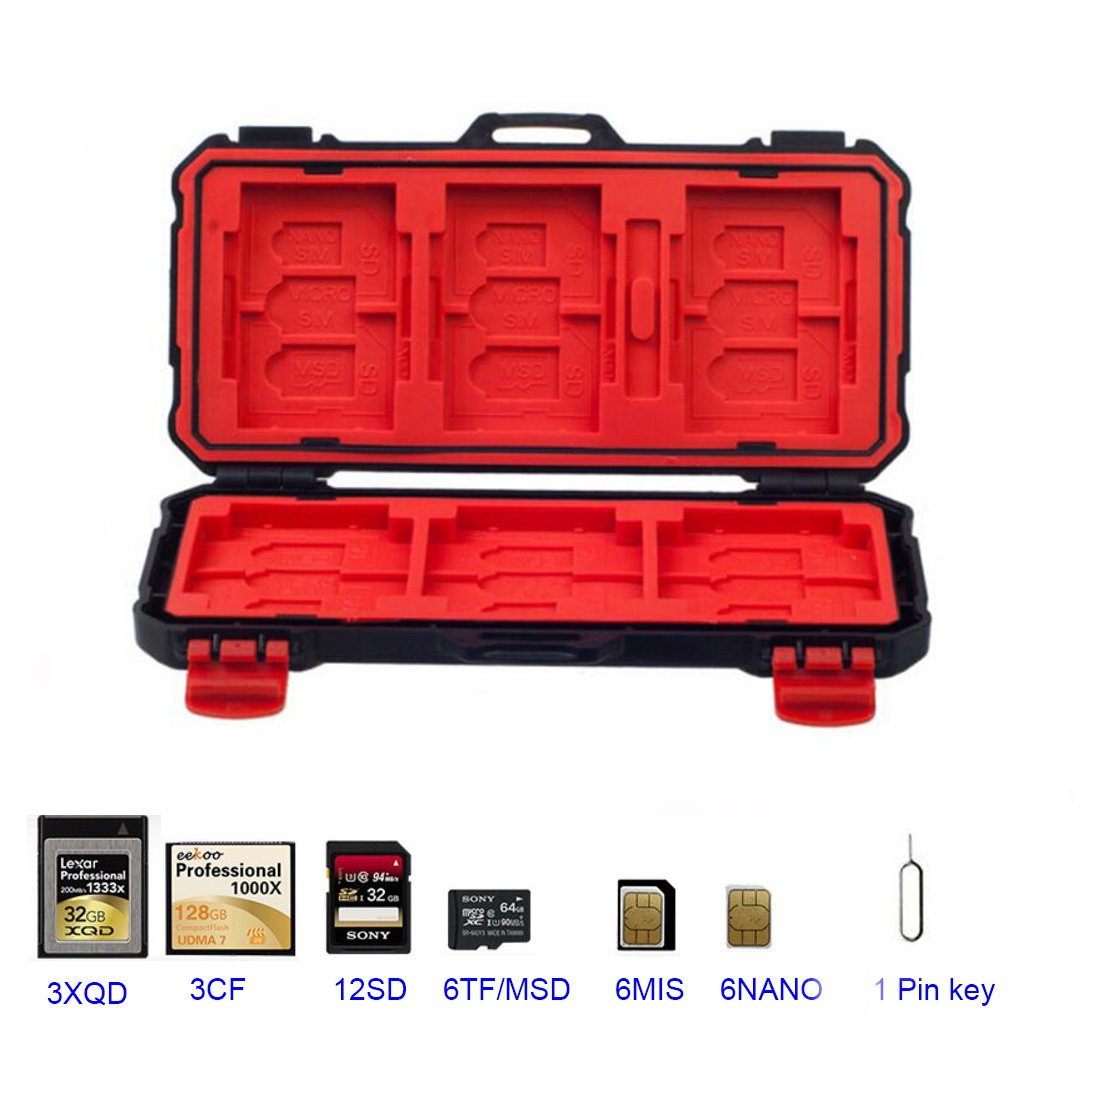 LXH LYNCA Memory Card Case Holder SD/CF/MSD/XQD/TF/SDHC SDXC Micro SD Card Storage Box Camera Cartridge Waterproof and Anti-dust Box With Carabiner For 12SD+3CF+3XQD+6TF+6MIS+6NANO (For 36 Slots)